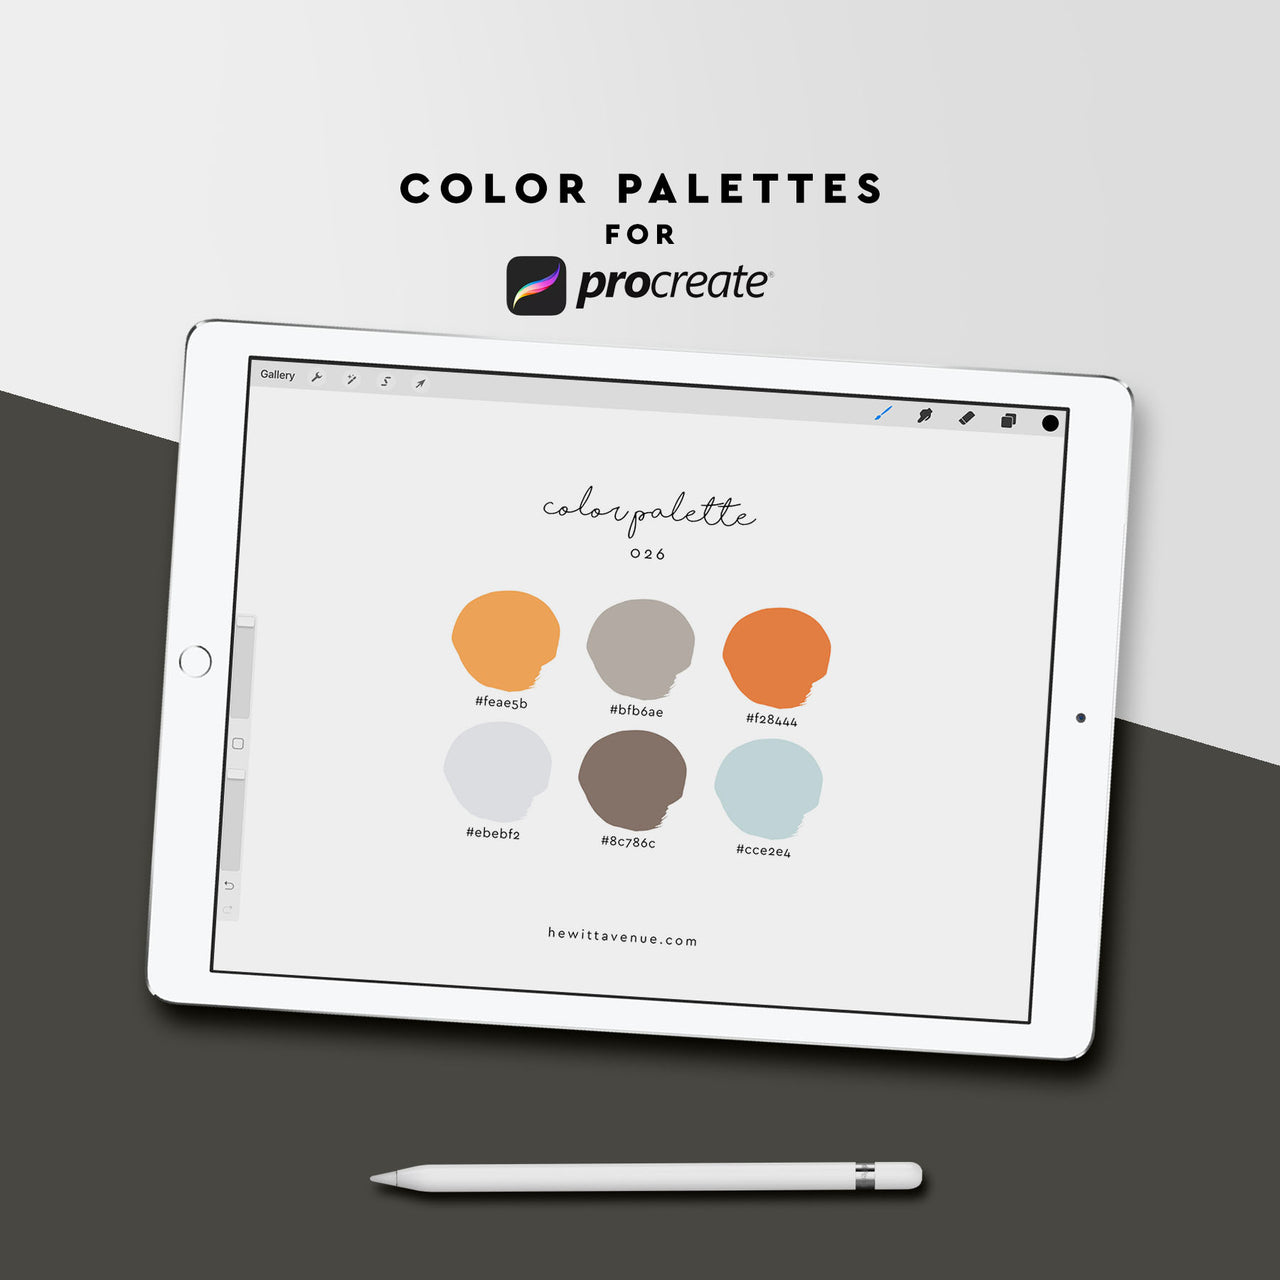 Color Palette 026 - Hewitt Avenue